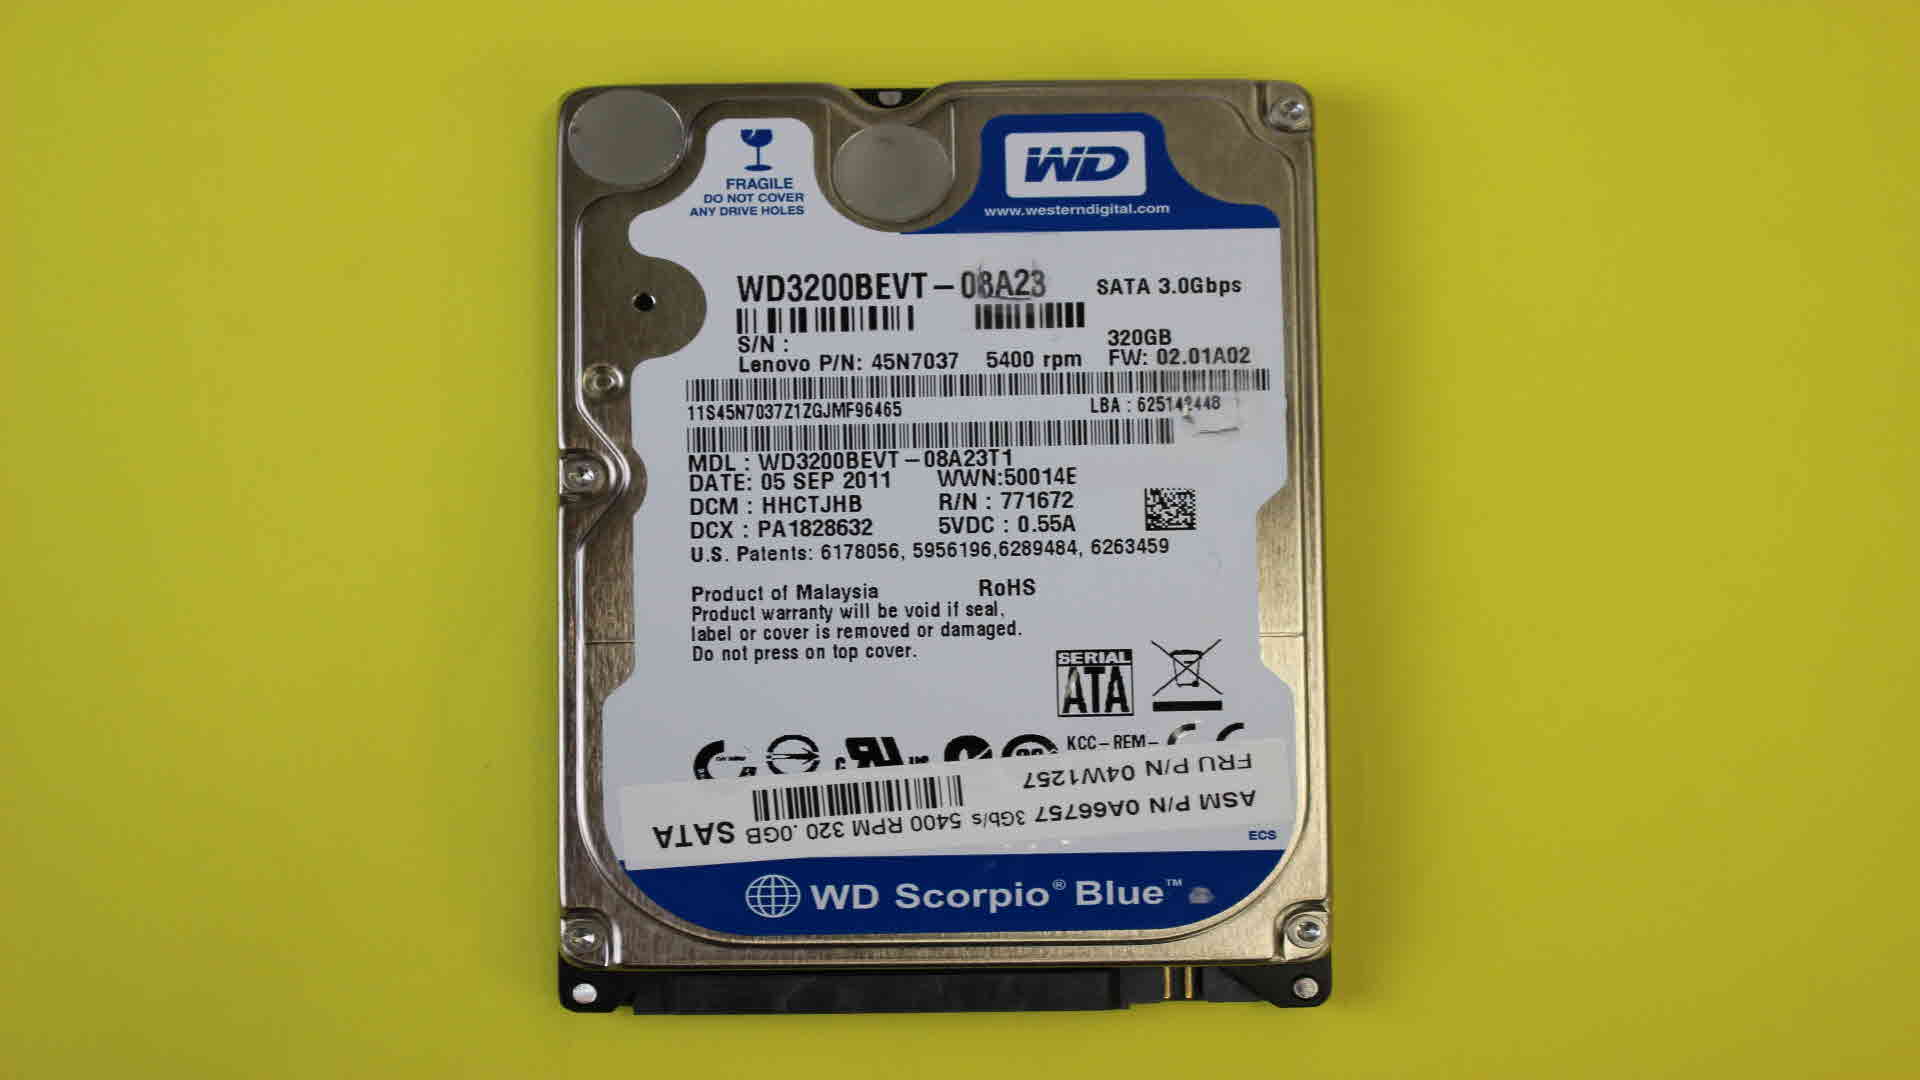 wd3200bevt-08a23t1-recovery